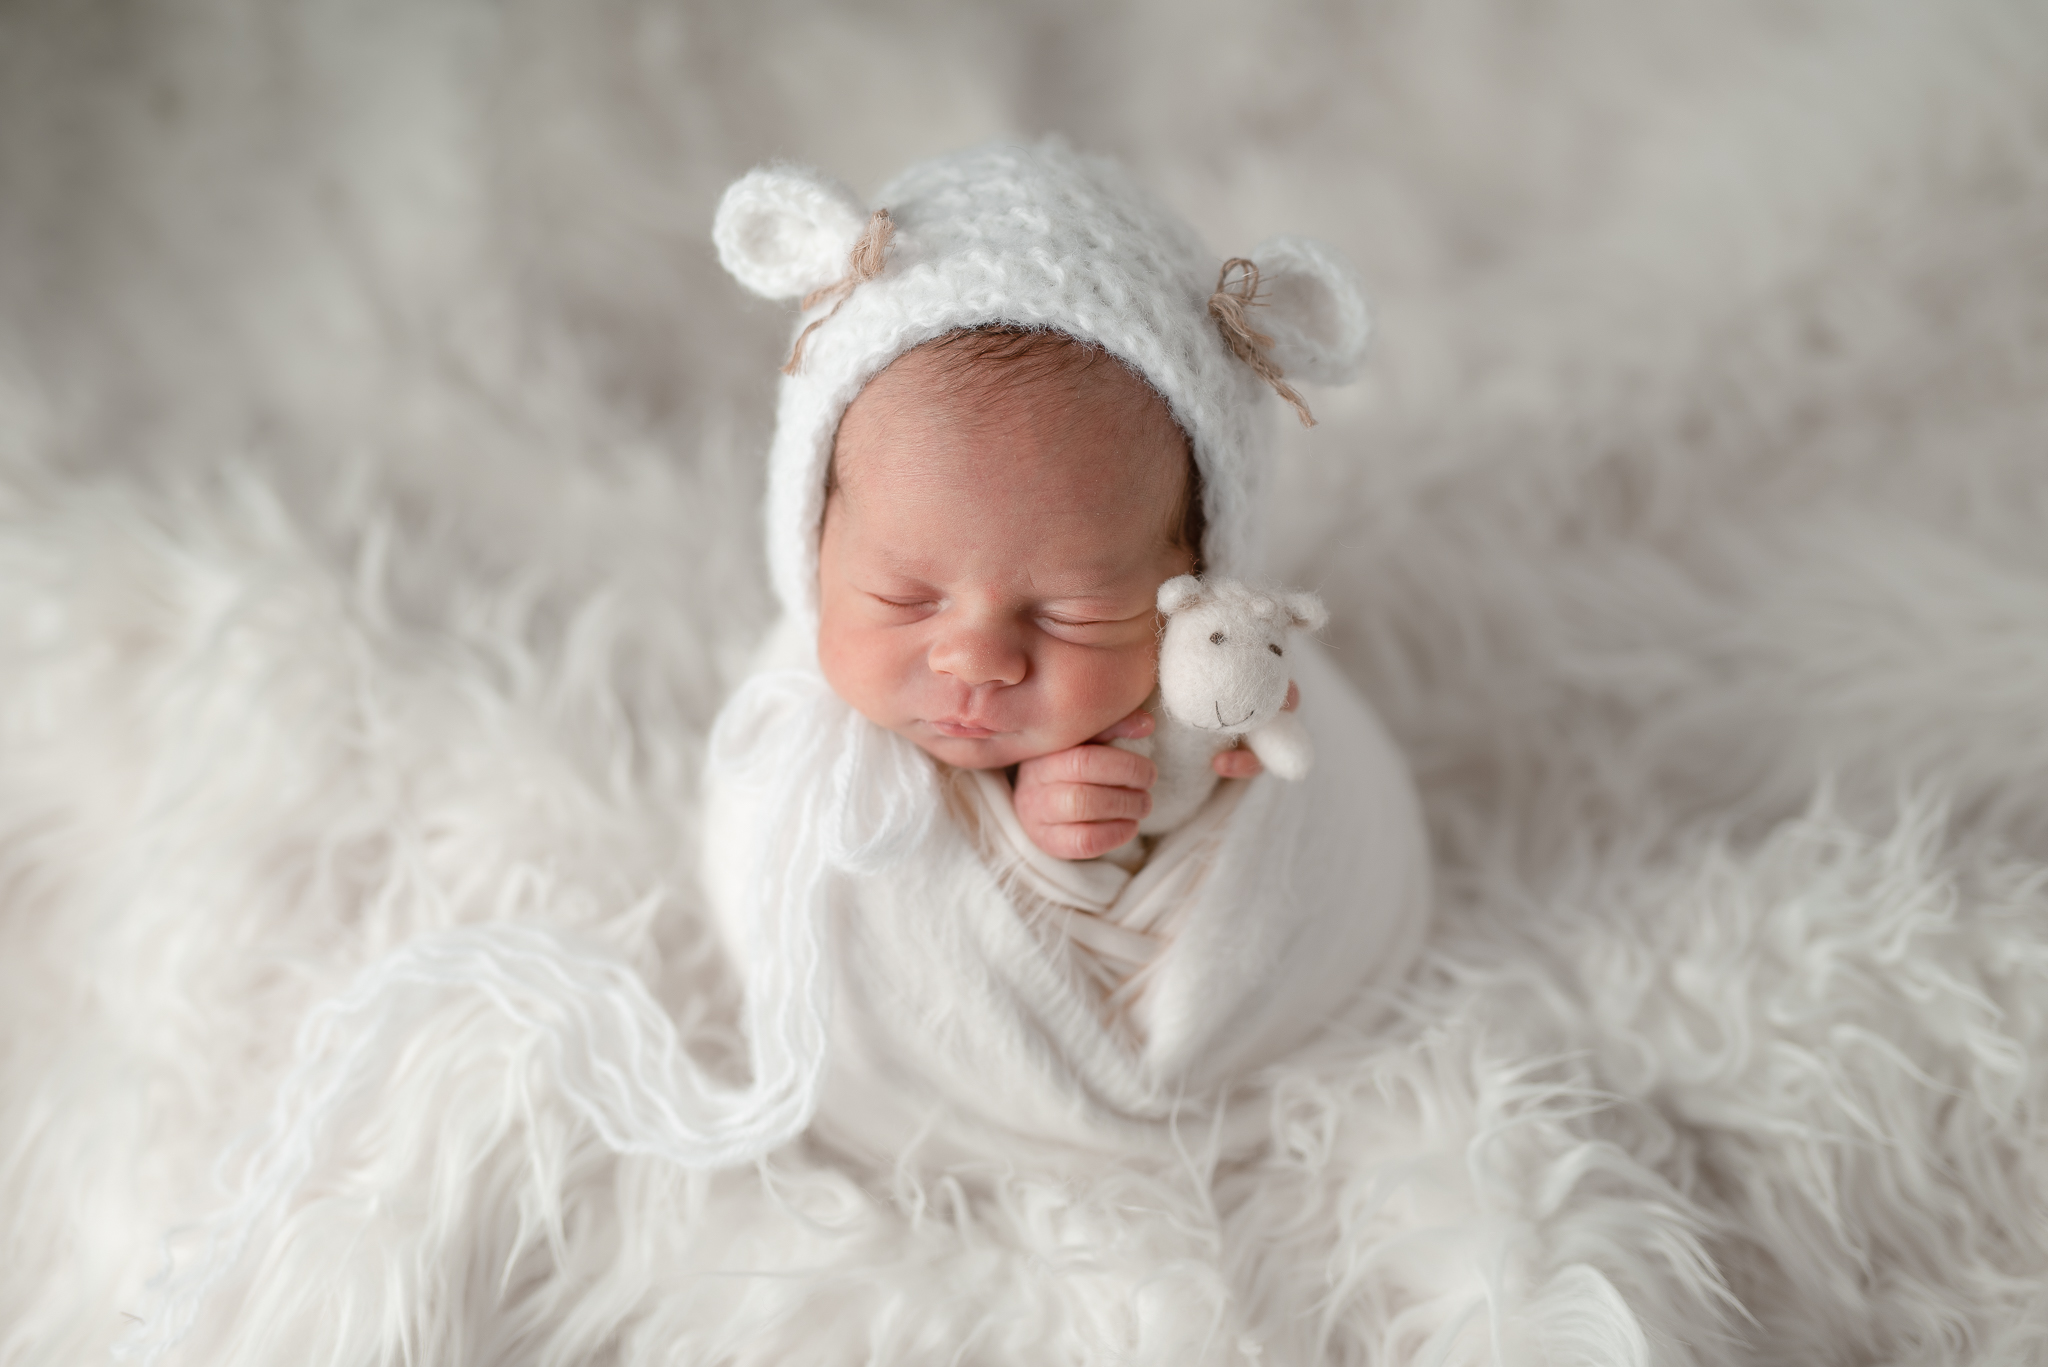 Newborn29NaomiLuciennePhotography032019-Edit.jpg